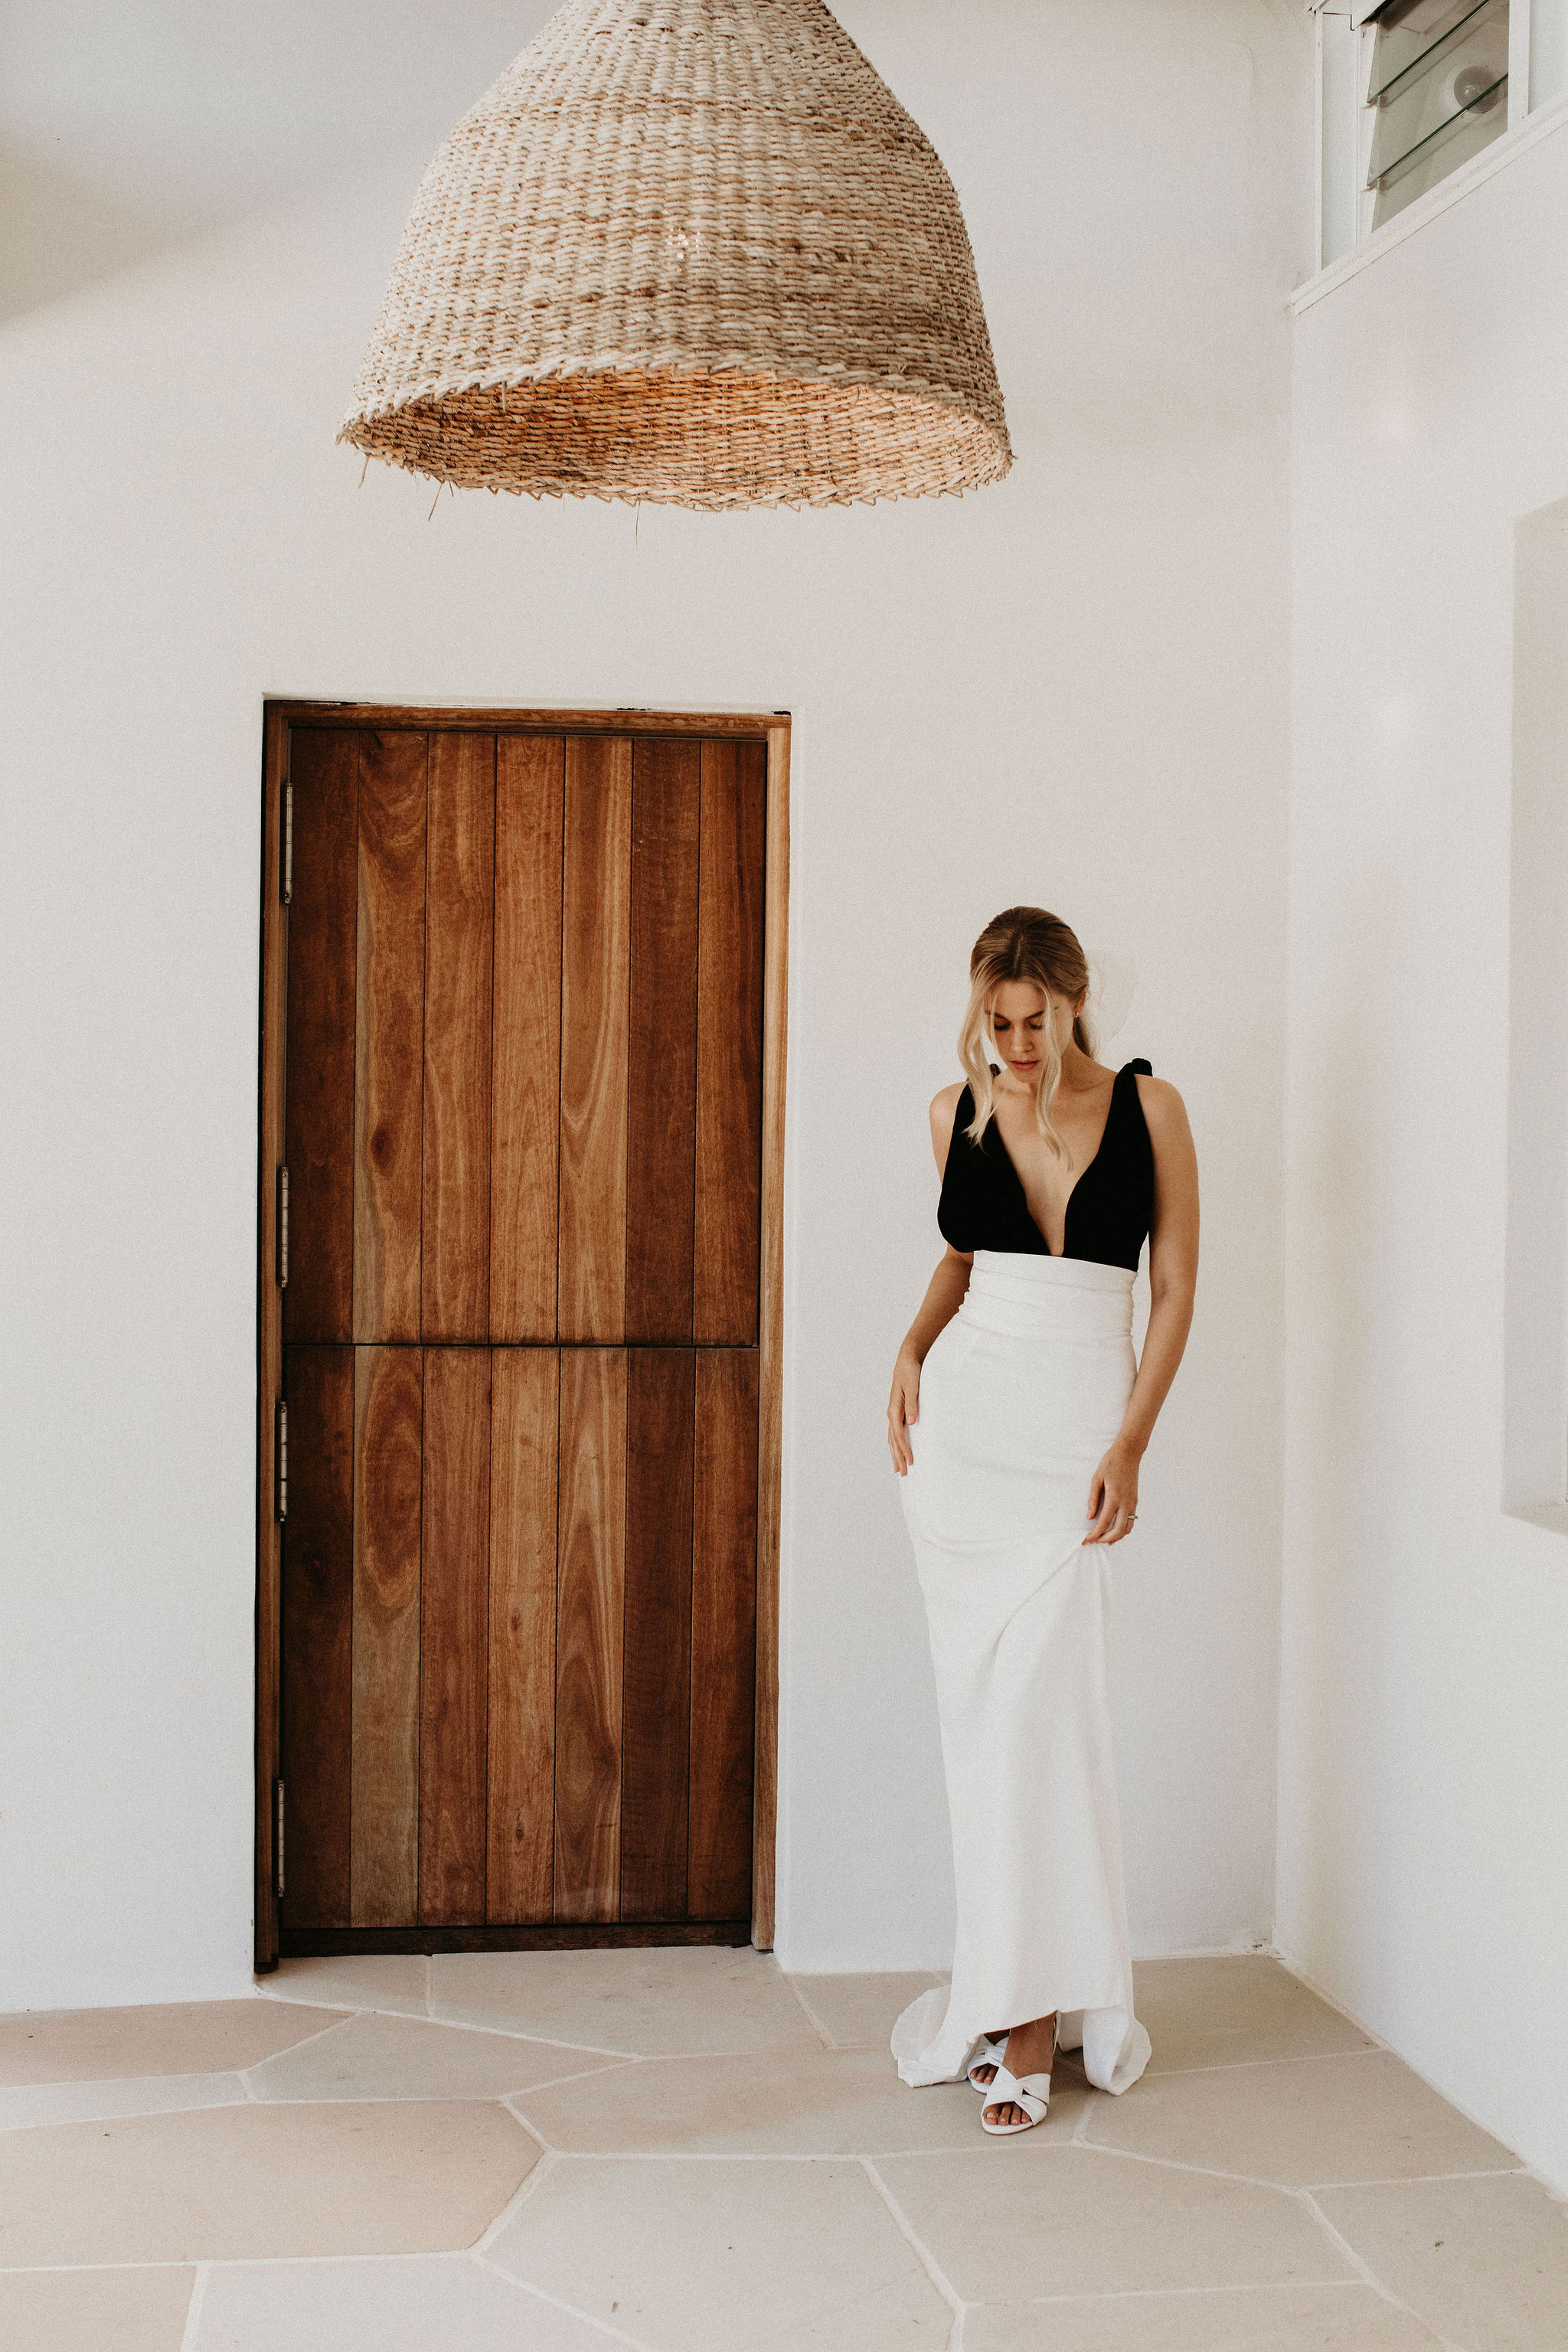 Black and White Wedding Dress with White Wedding Shoes